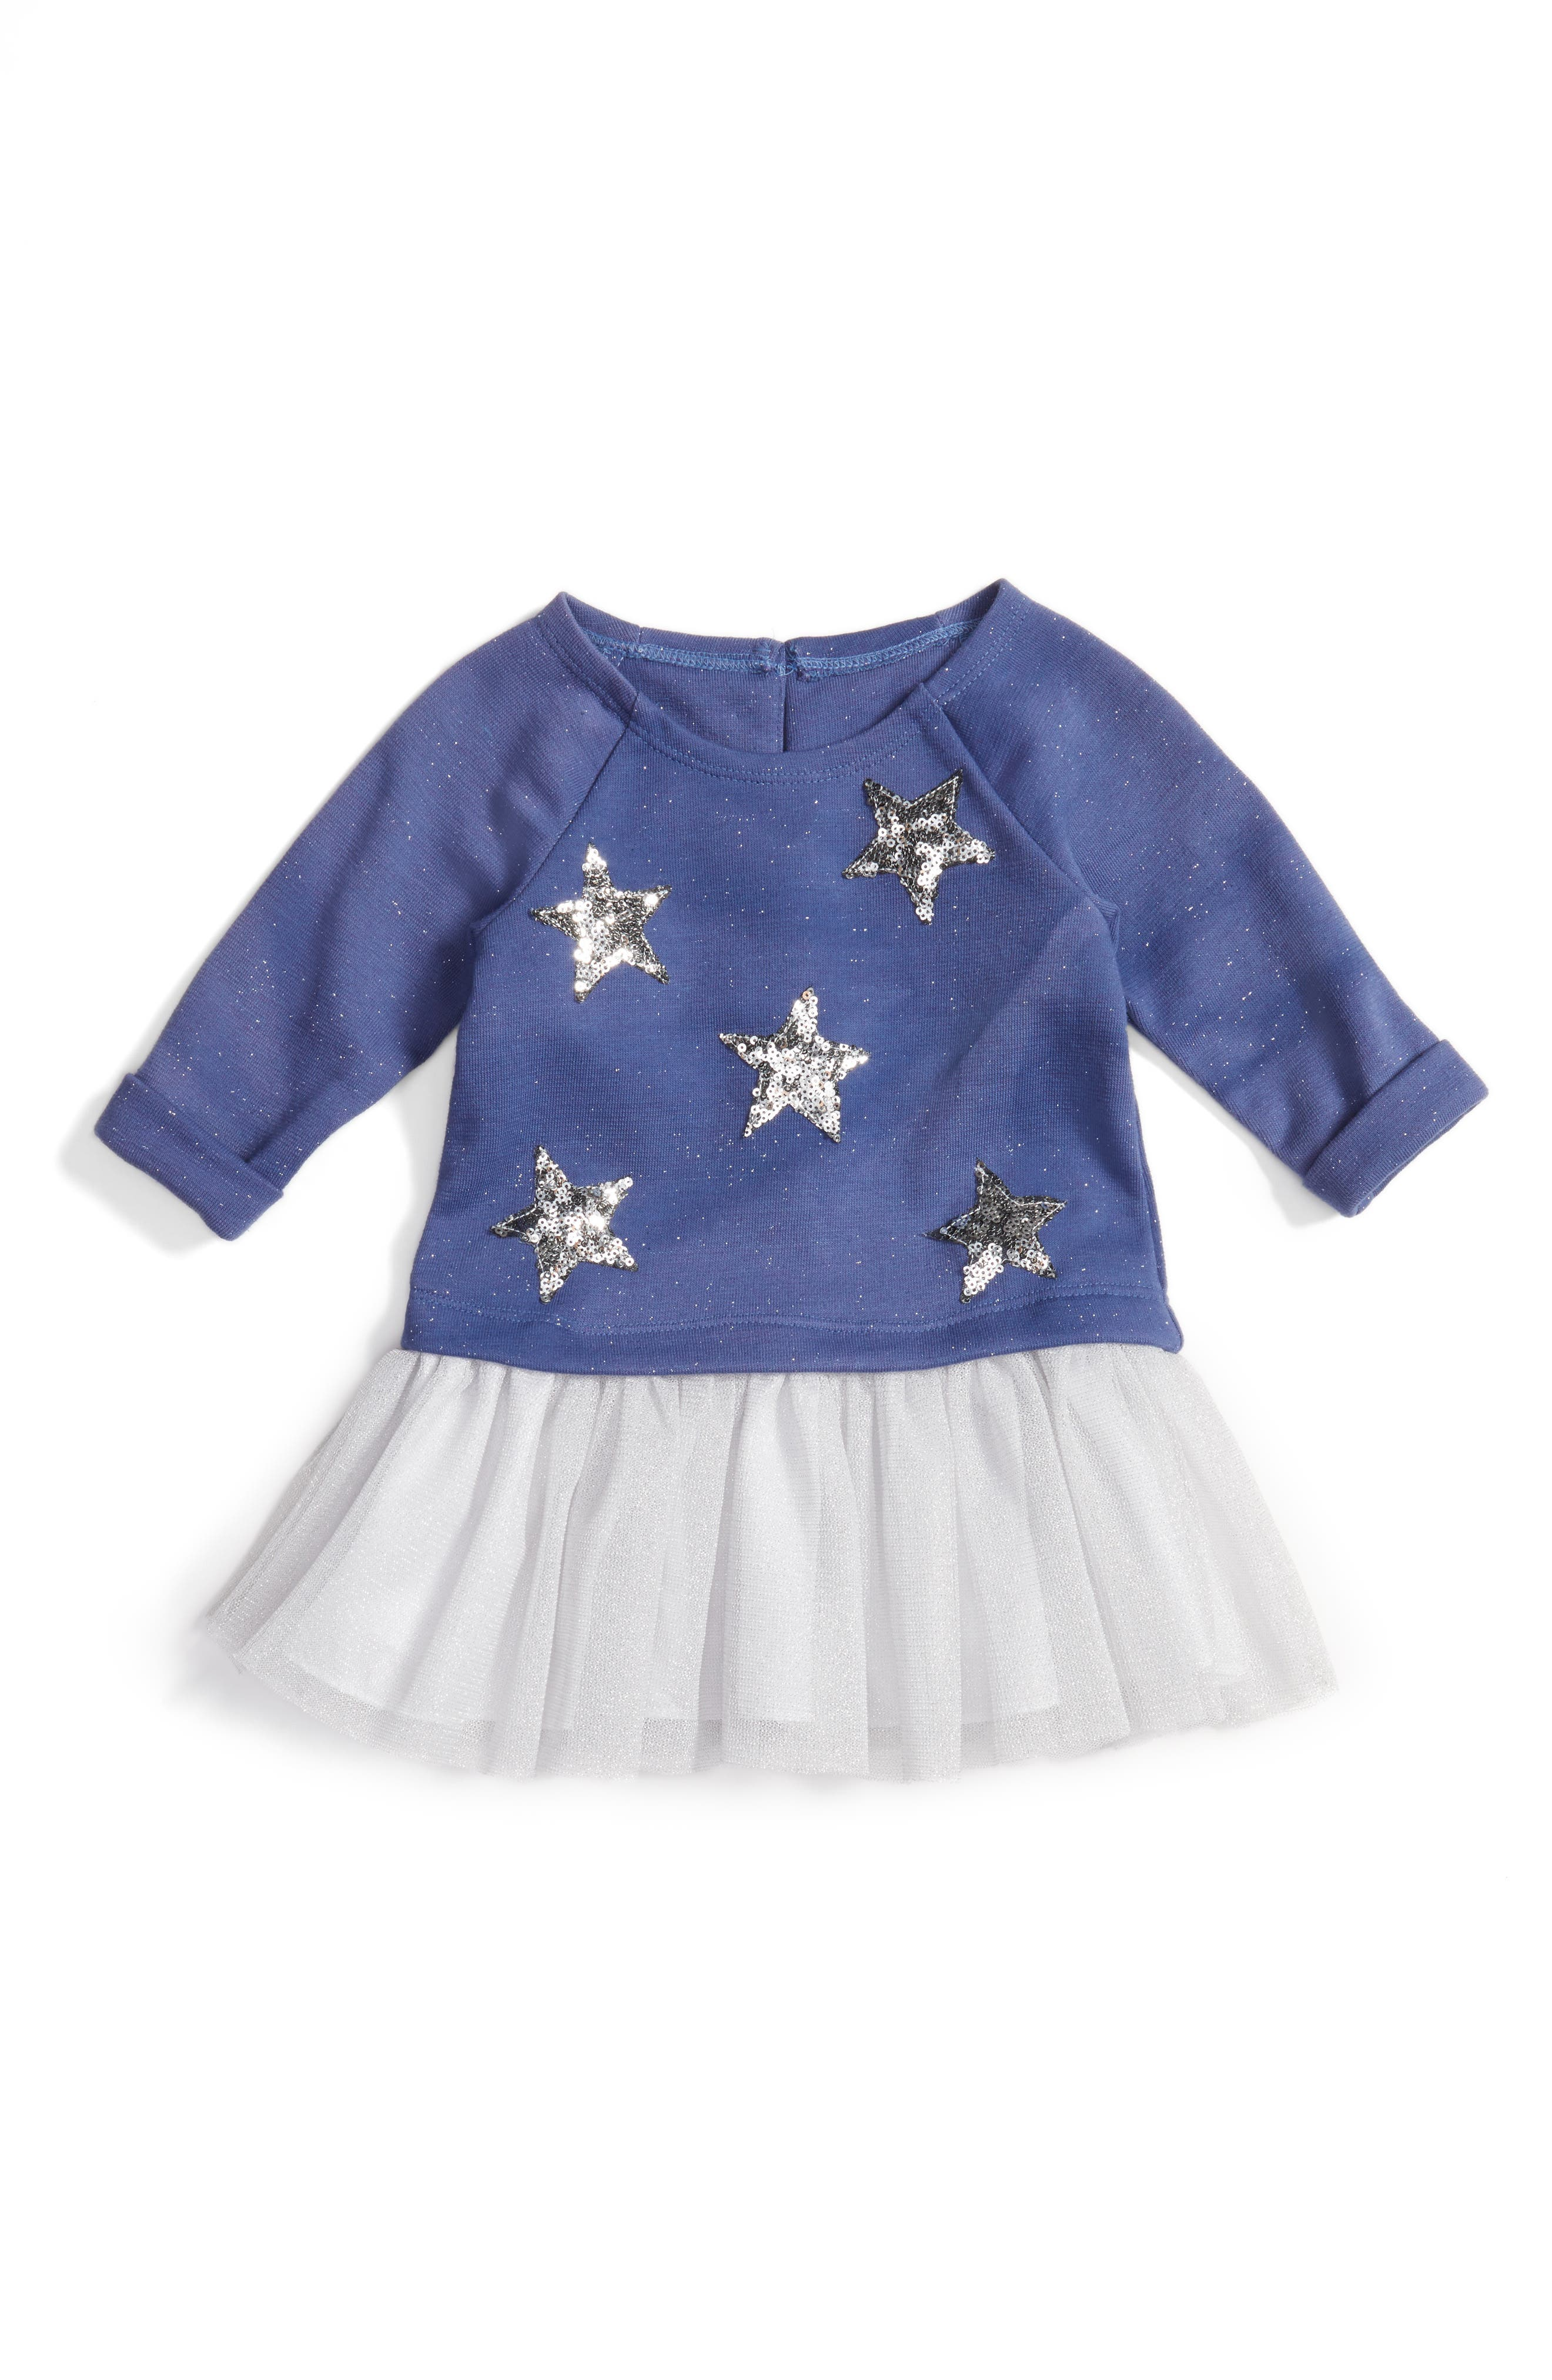 Main Image - Pippa & Julie Stars Embellished Dress (Baby Girls)